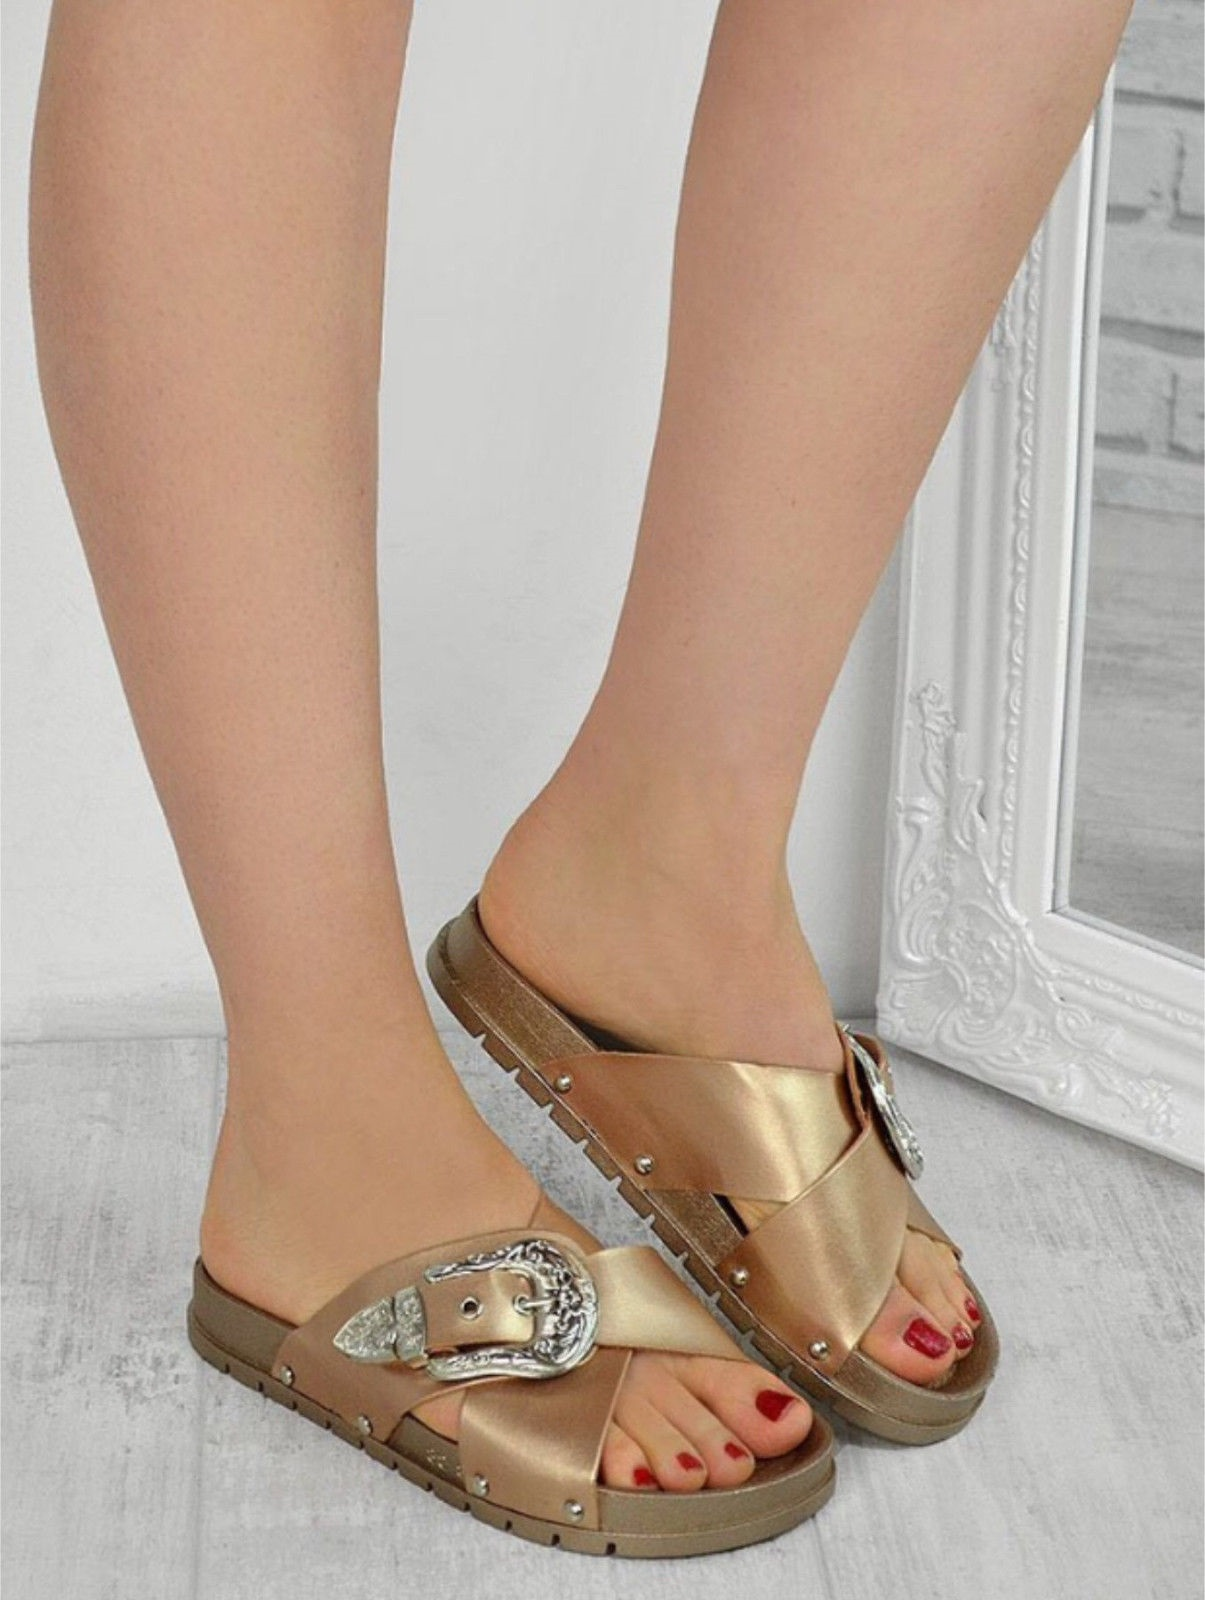 LADIES-WOMENS-STUDDED-BUCKLE-SLIP-ON-MULE-SUMMER-SLIDERS-SANDALS-SHOES-SIZE-3-8 thumbnail 4